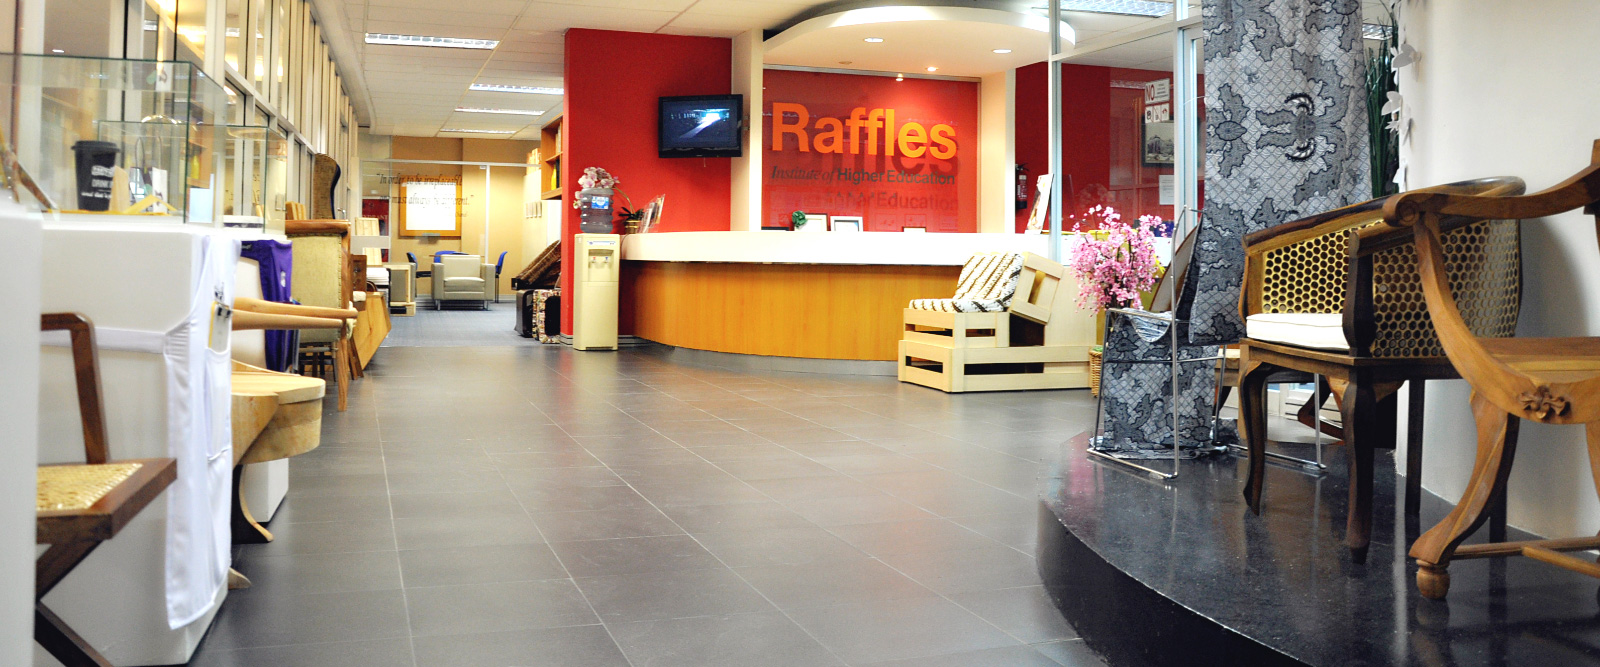 Raffles colleges jakarta interior design schools jakarta for Interior design colleges